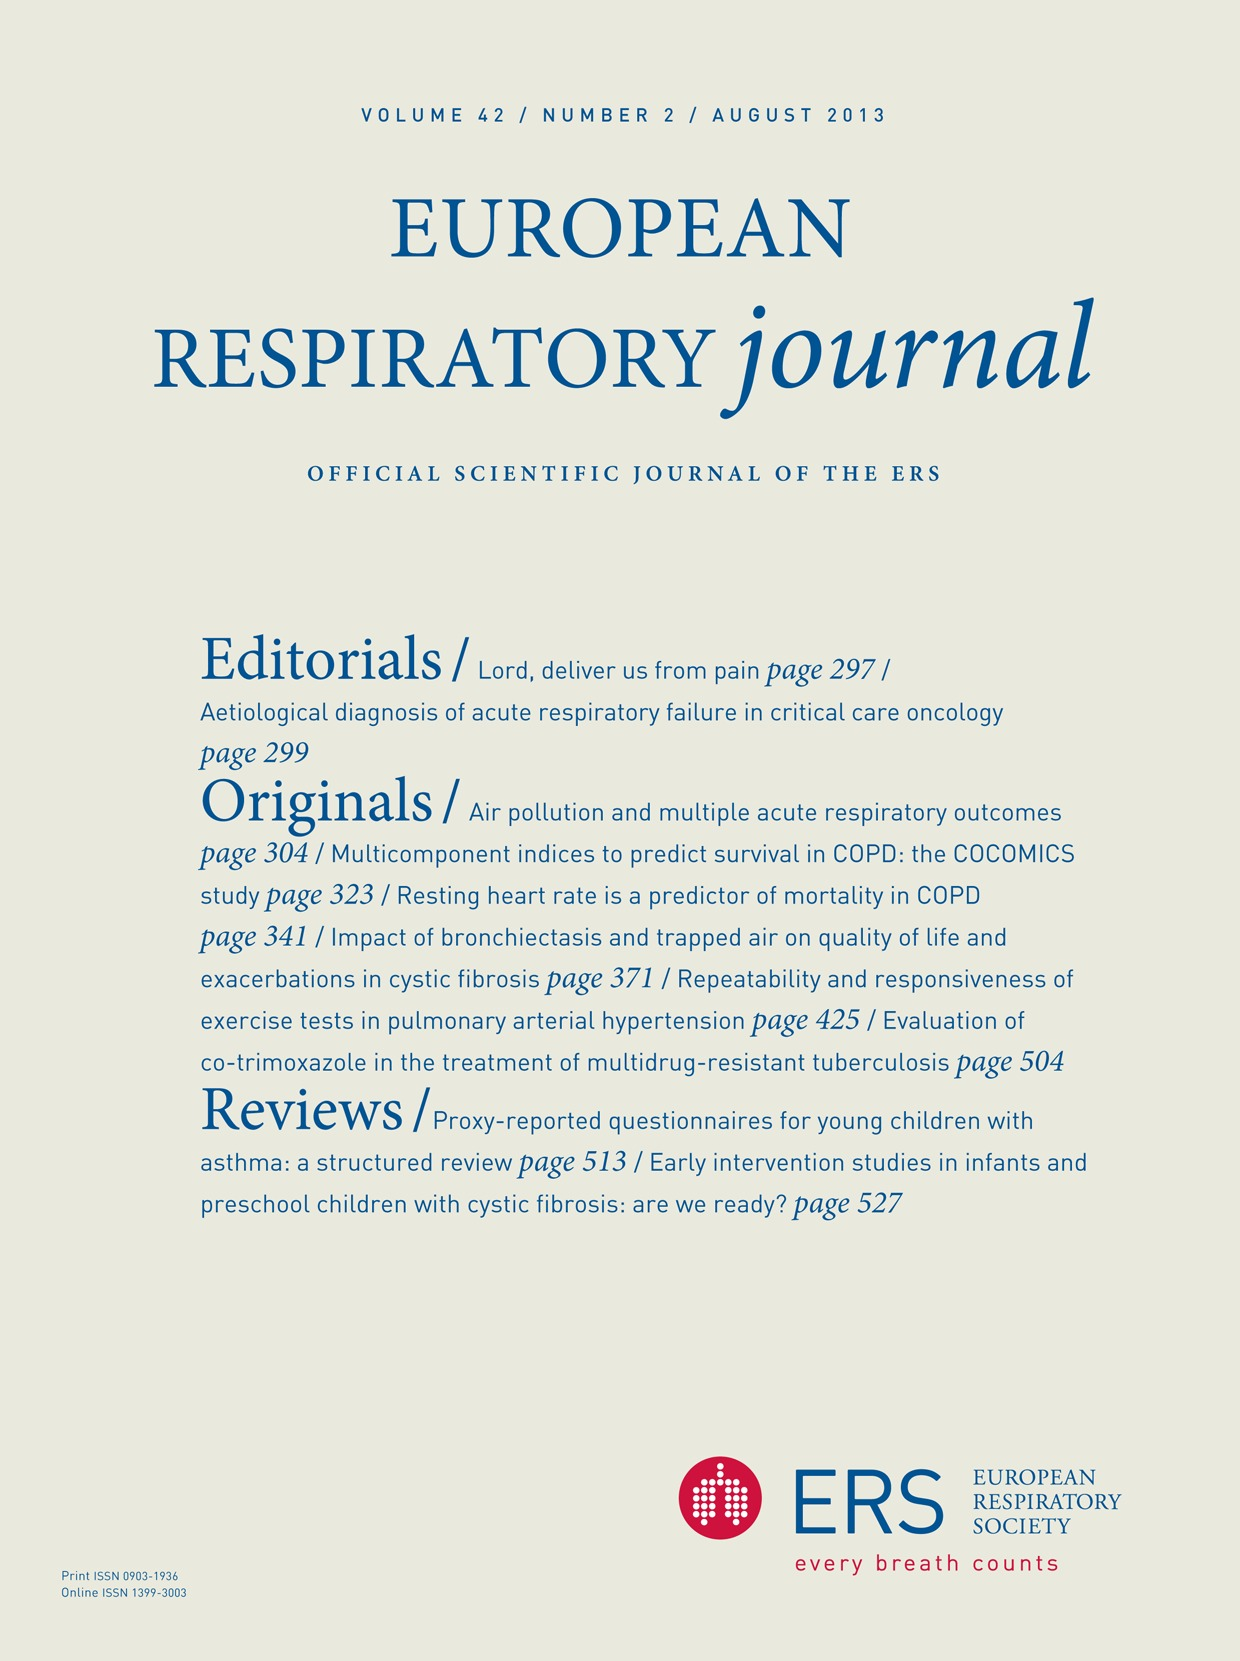 Sleep disordered breathing in patients receiving therapy